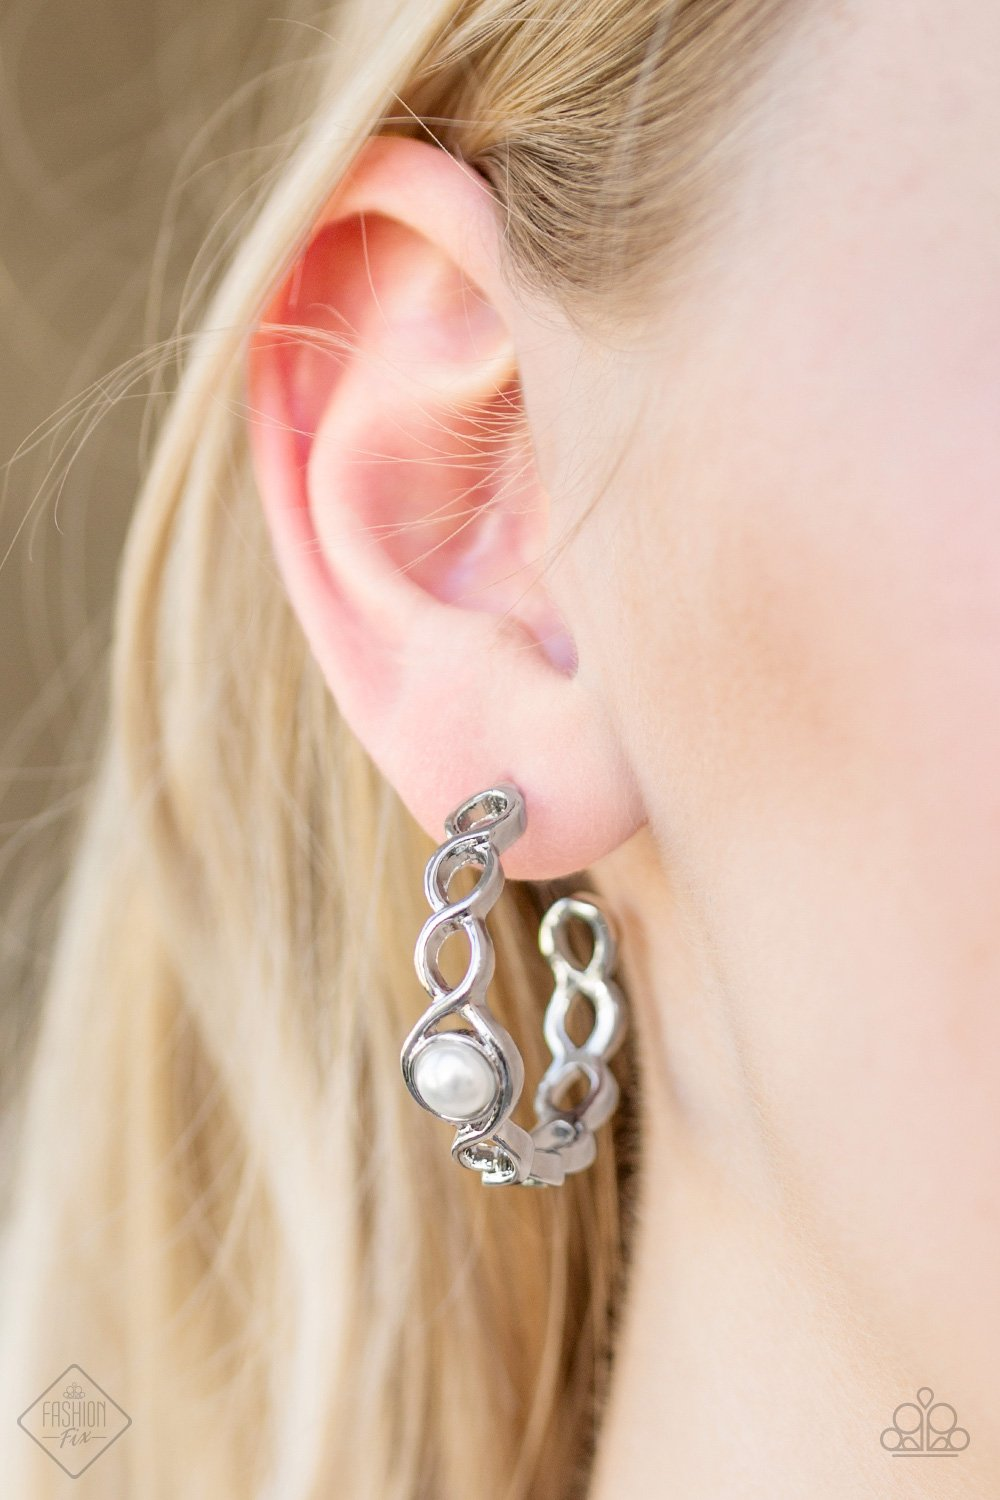 Glistening silver bars weave around a white pearl-drop center, creating a refined hoop. Earring attaches to a standard post fitting. Hoop measures 1